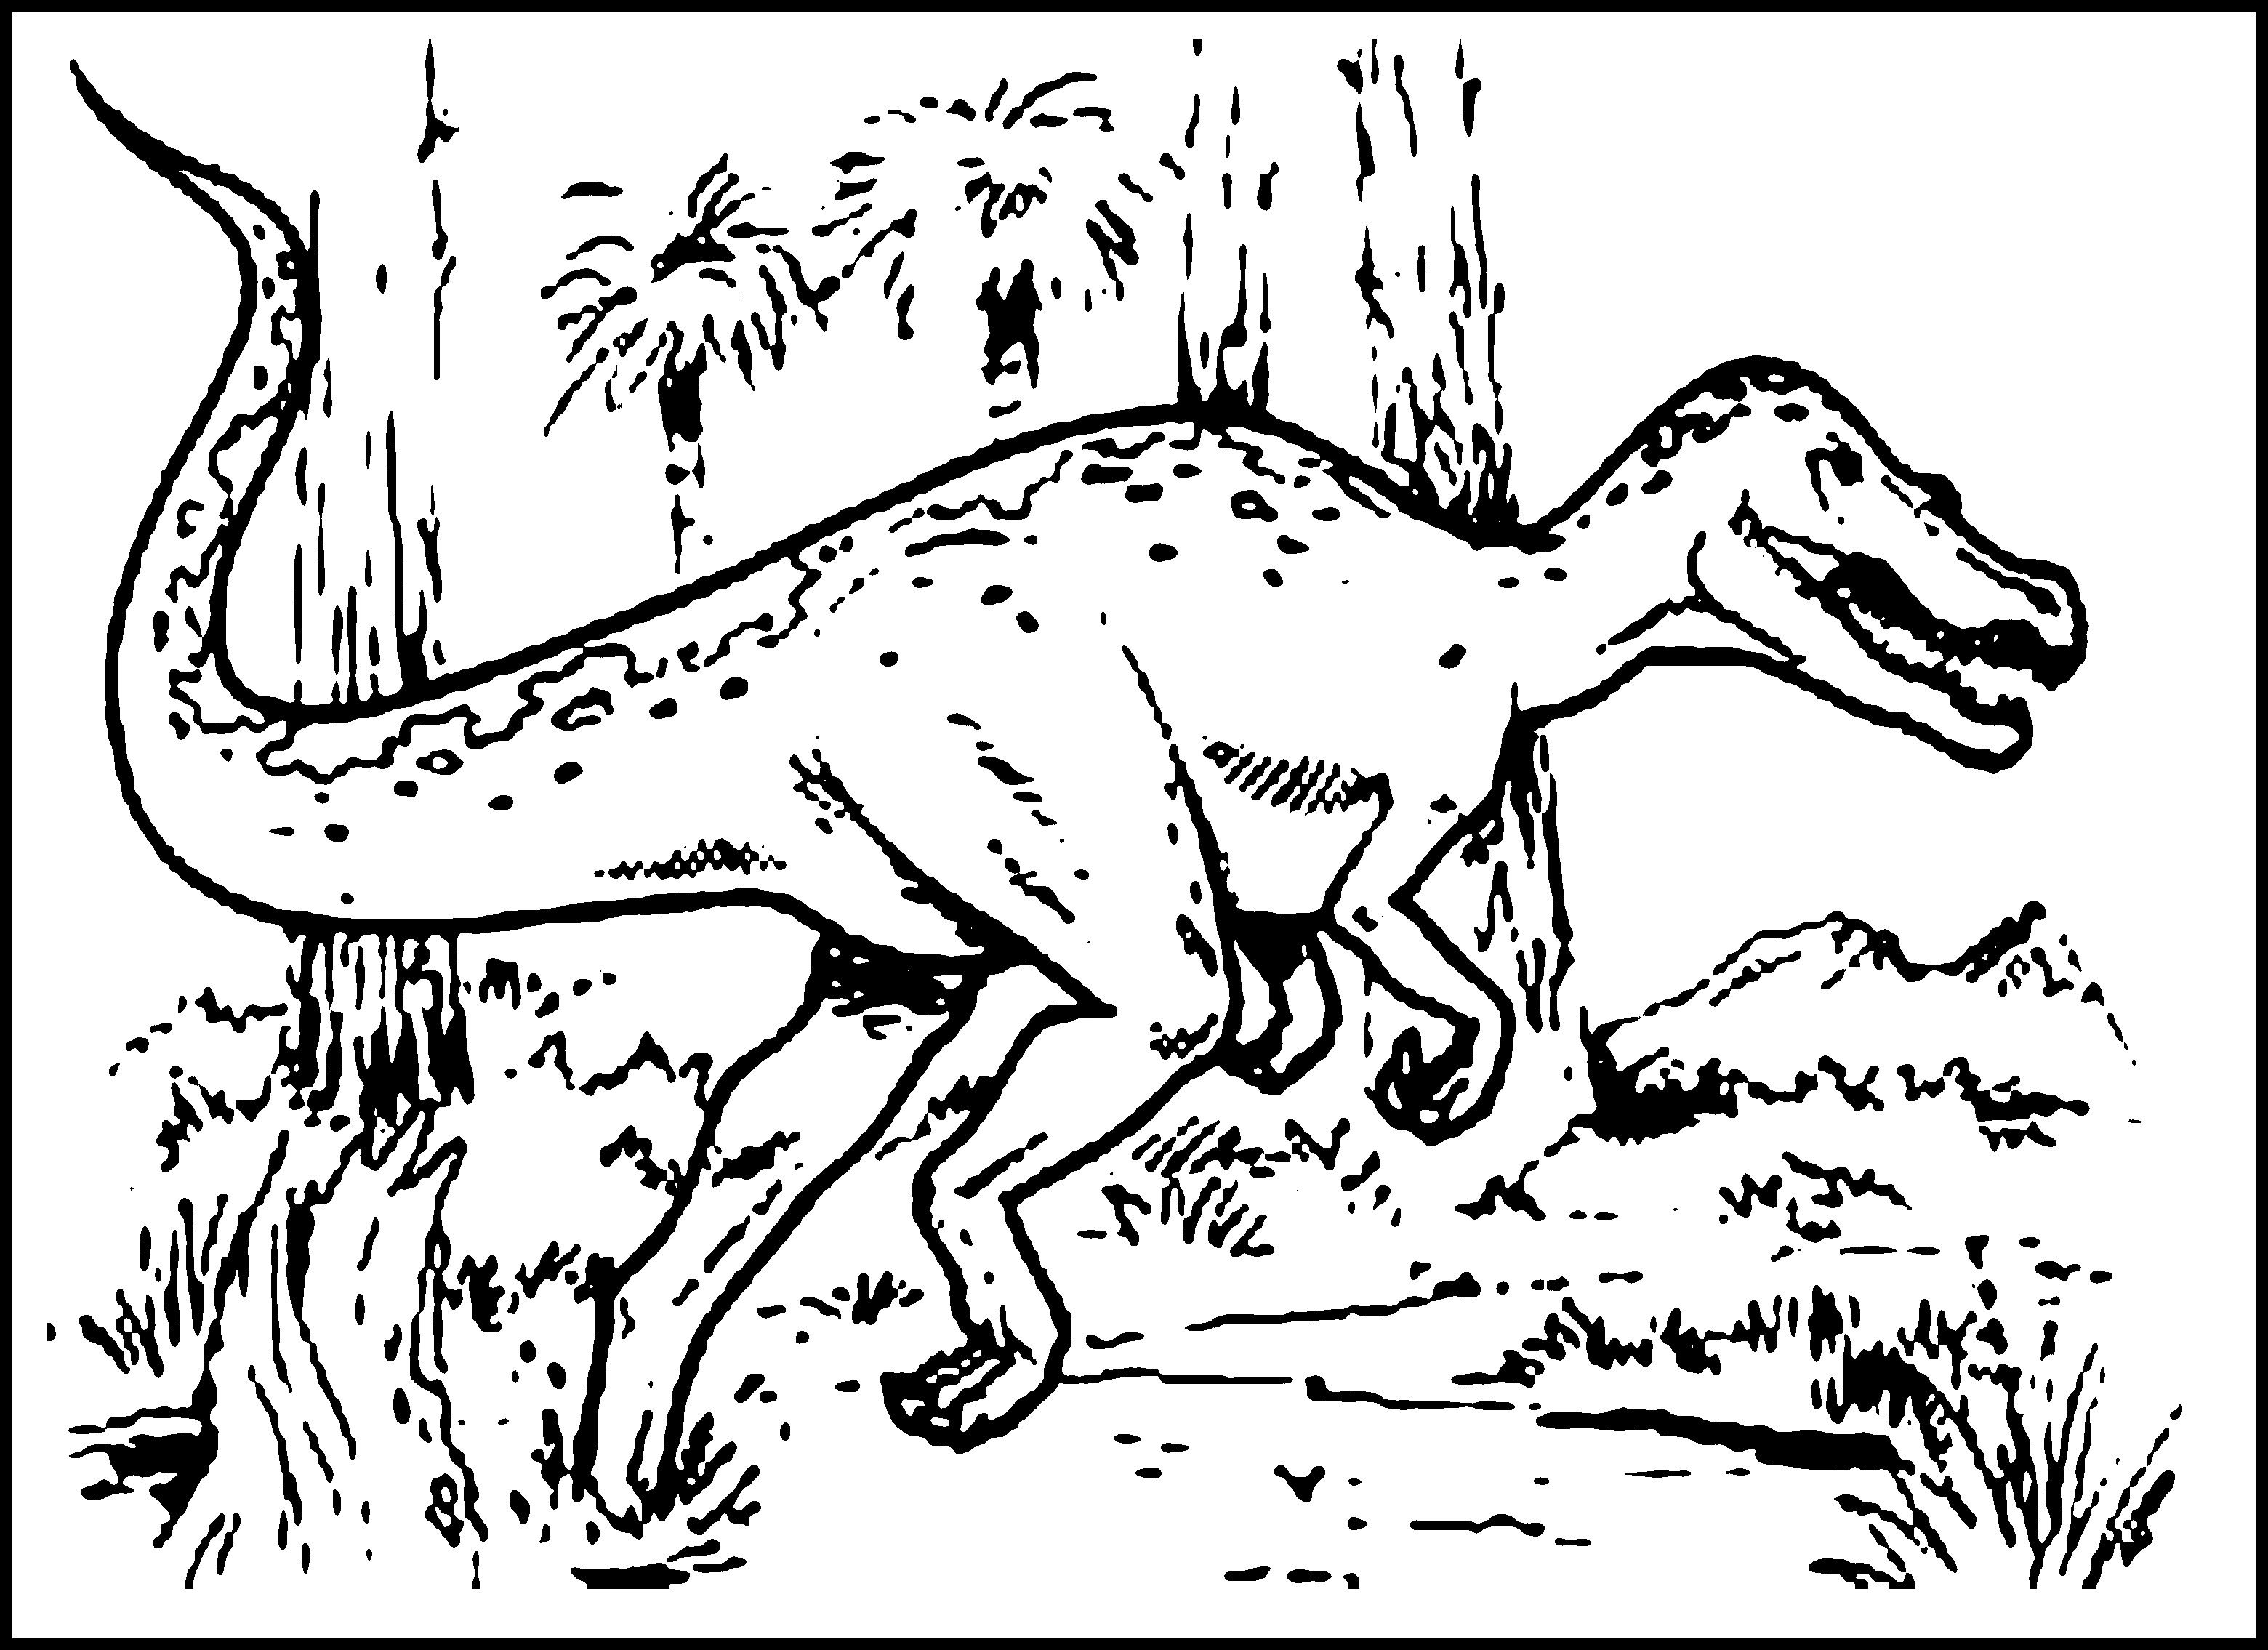 dino coloring page dinosaur coloring pages for kids coloring page dino